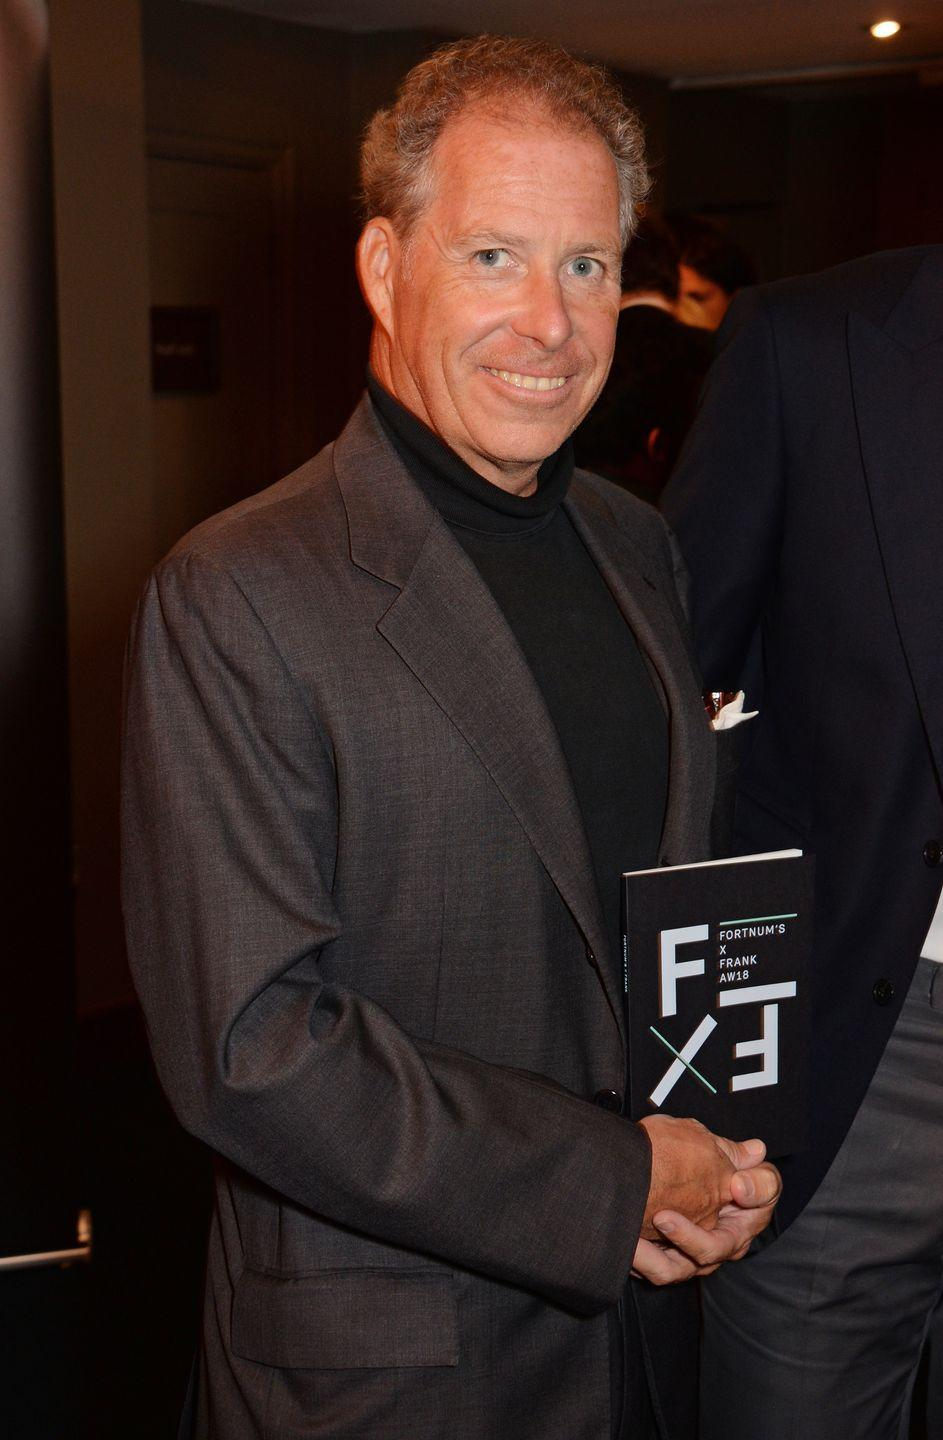 """<p>David Armstrong-Jones is the first royal in line for the throne who <em>isn't</em> a descendant of Queen Elizabeth II. He's the son of her younger sister, Princess Margaret, and inherited the title Earl of Snowdon after his father. Armstrong-Jones is a furniture designer and the former chair of auction house Christie's. In 2007, he <a href=""""http://gawker.com/316307/david-armstrong-jones-is-the-royal-victim-of-wacky-uk-gay-coke-extortion"""" rel=""""nofollow noopener"""" target=""""_blank"""" data-ylk=""""slk:was caught up in a """"sex and drugs"""" blackmail plot"""" class=""""link rapid-noclick-resp"""">was caught up in a """"sex and drugs"""" blackmail plot</a> after two men threatened to release allegedly compromising videos to the media unless he paid them off. British police arrested the men and reportedly determined that Armstrong-Jones was not even involved in the footage in question.</p>"""